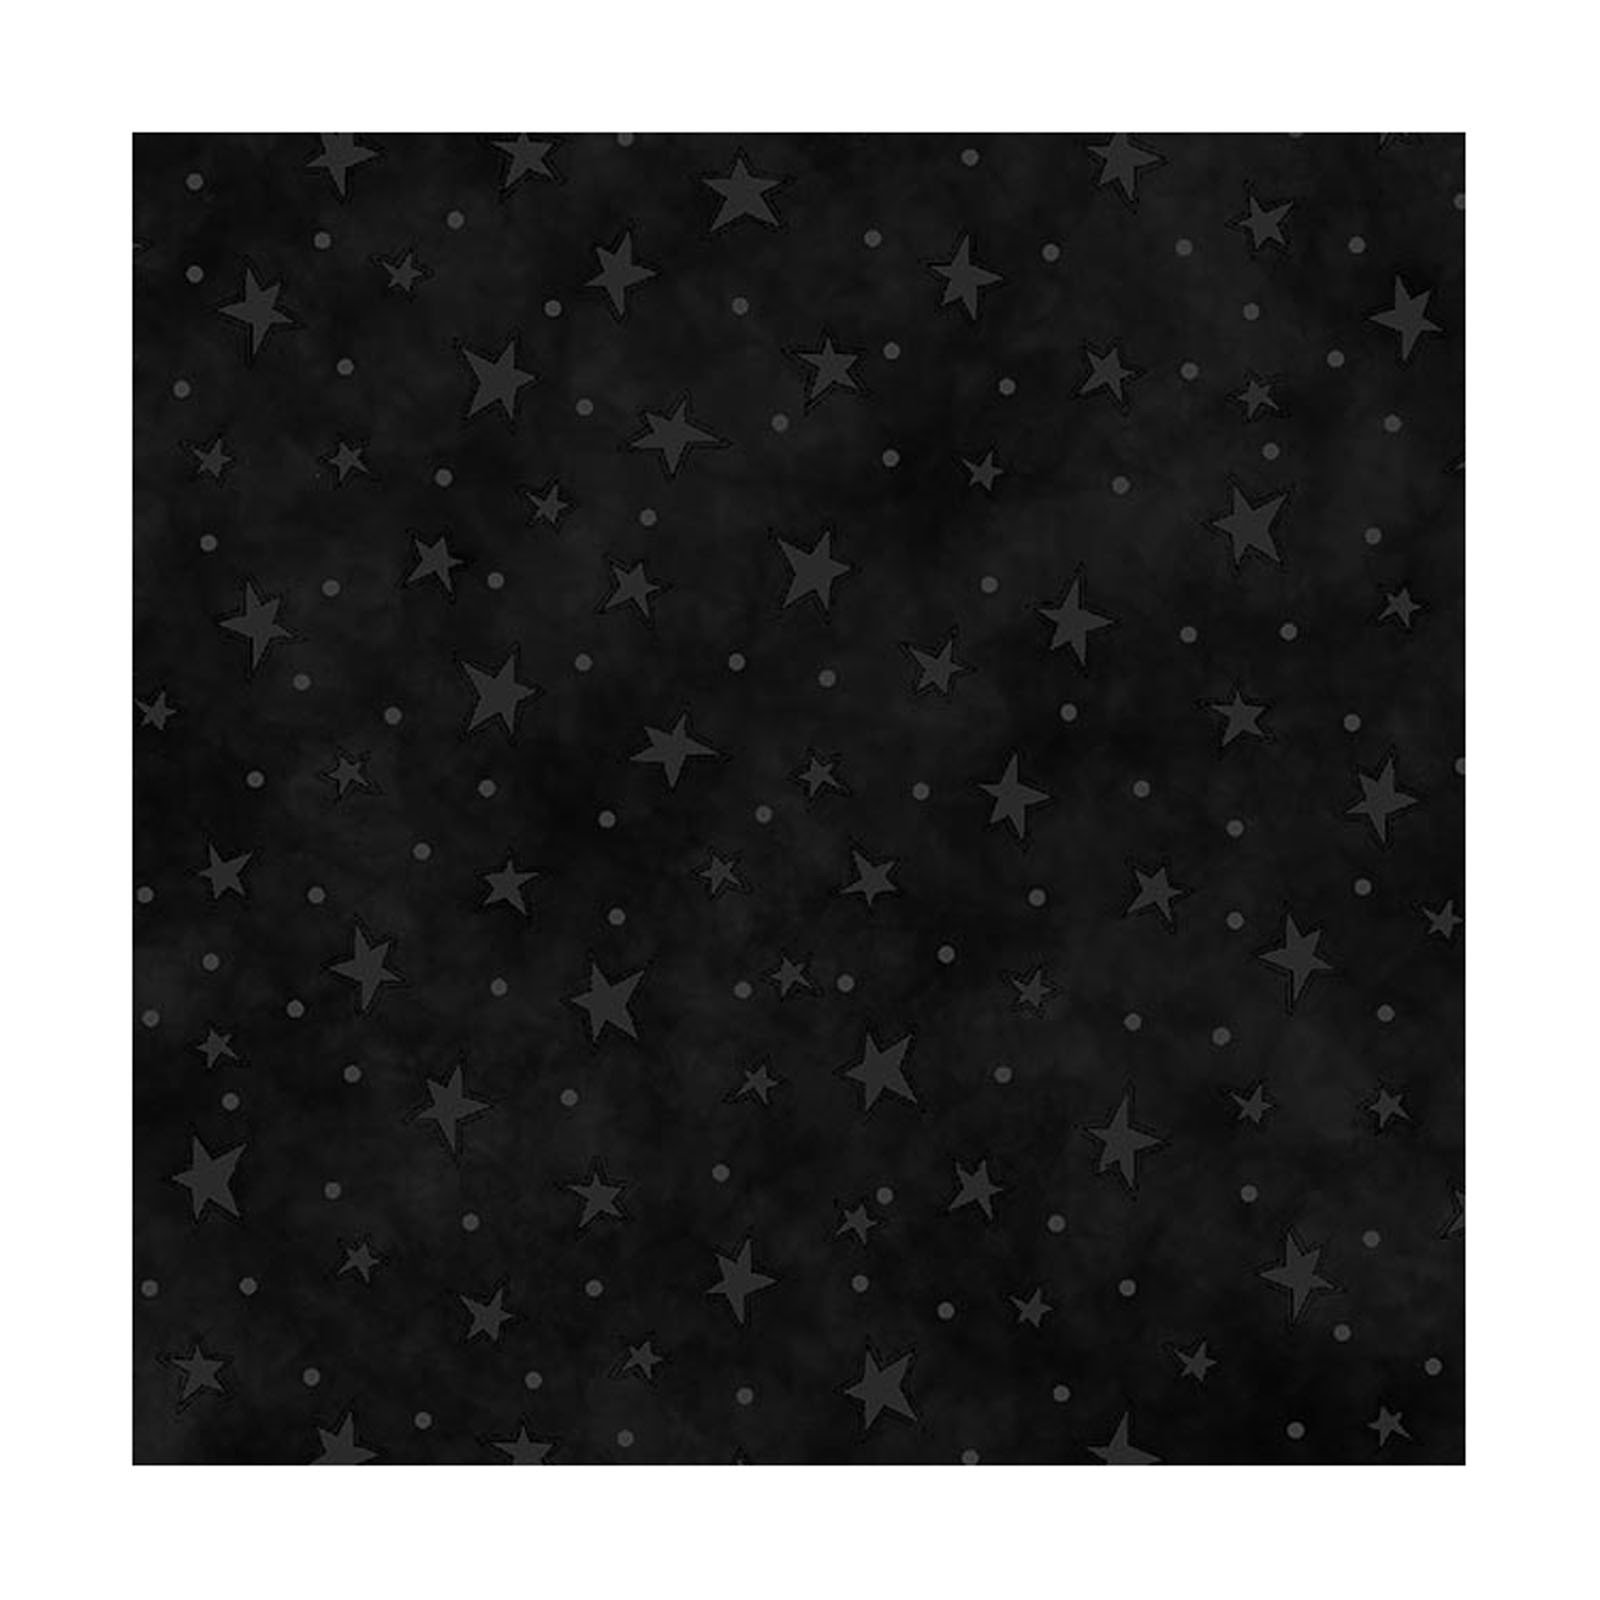 Starry Basics - Black<br/>Henry Glass 8294-99